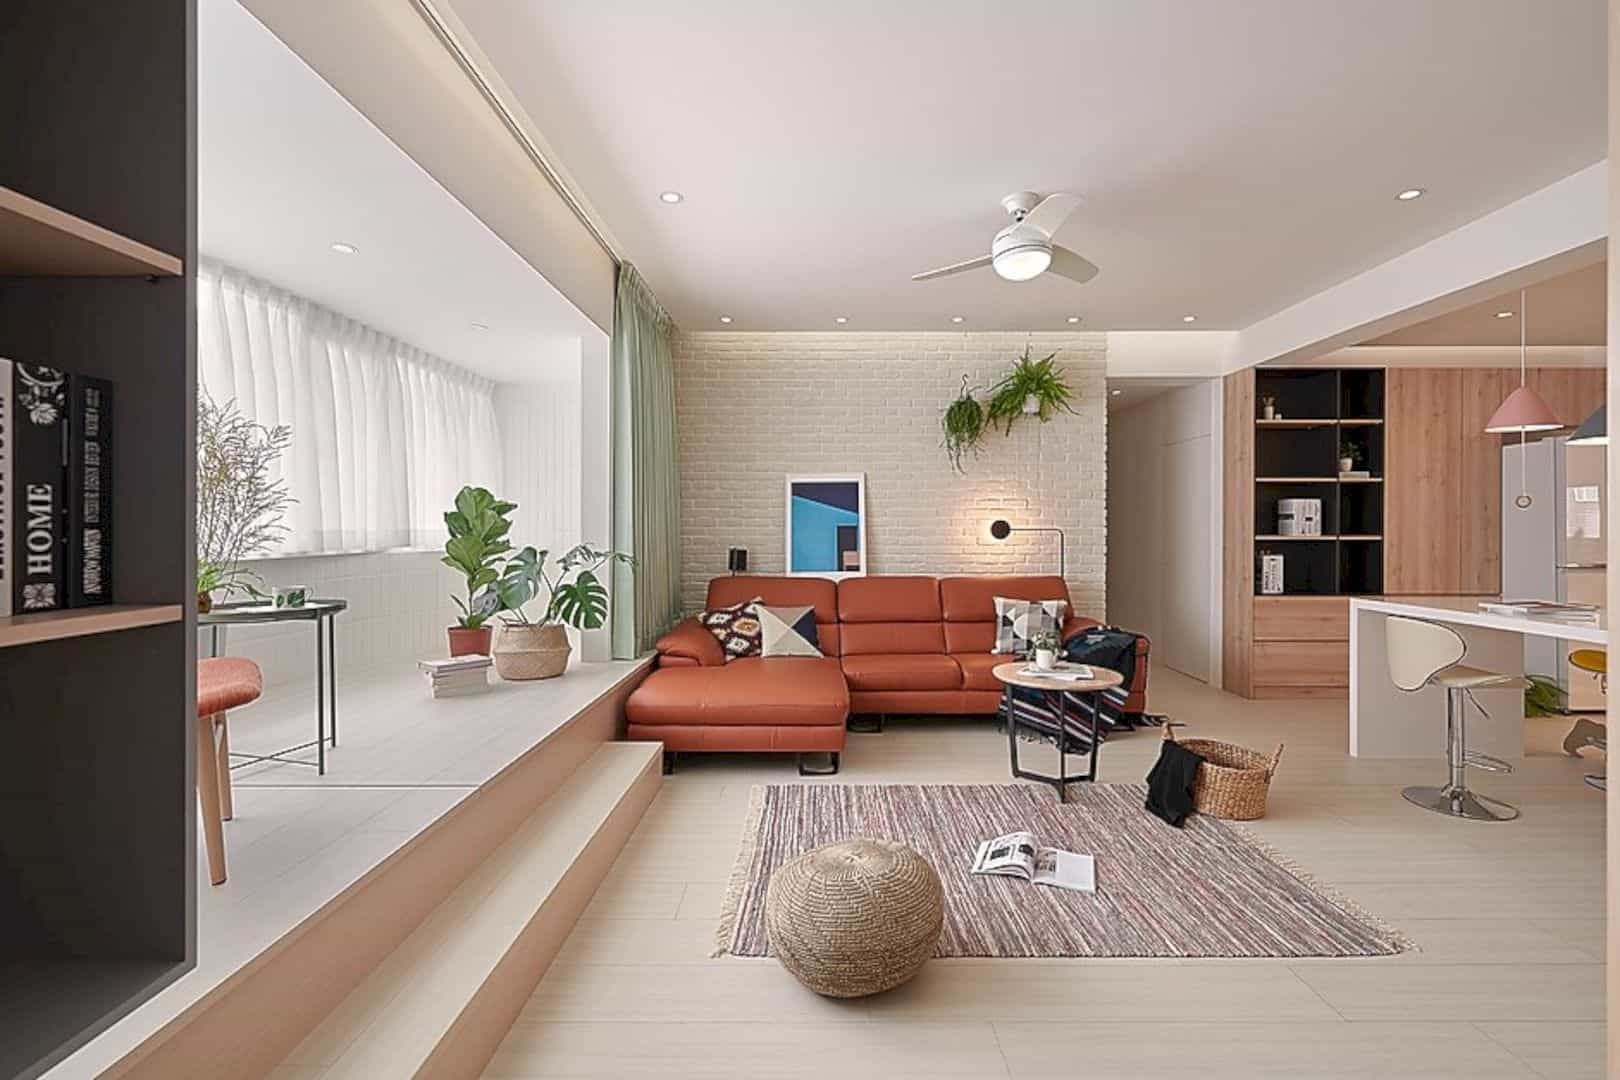 No 116 Shiguang Apartment 11